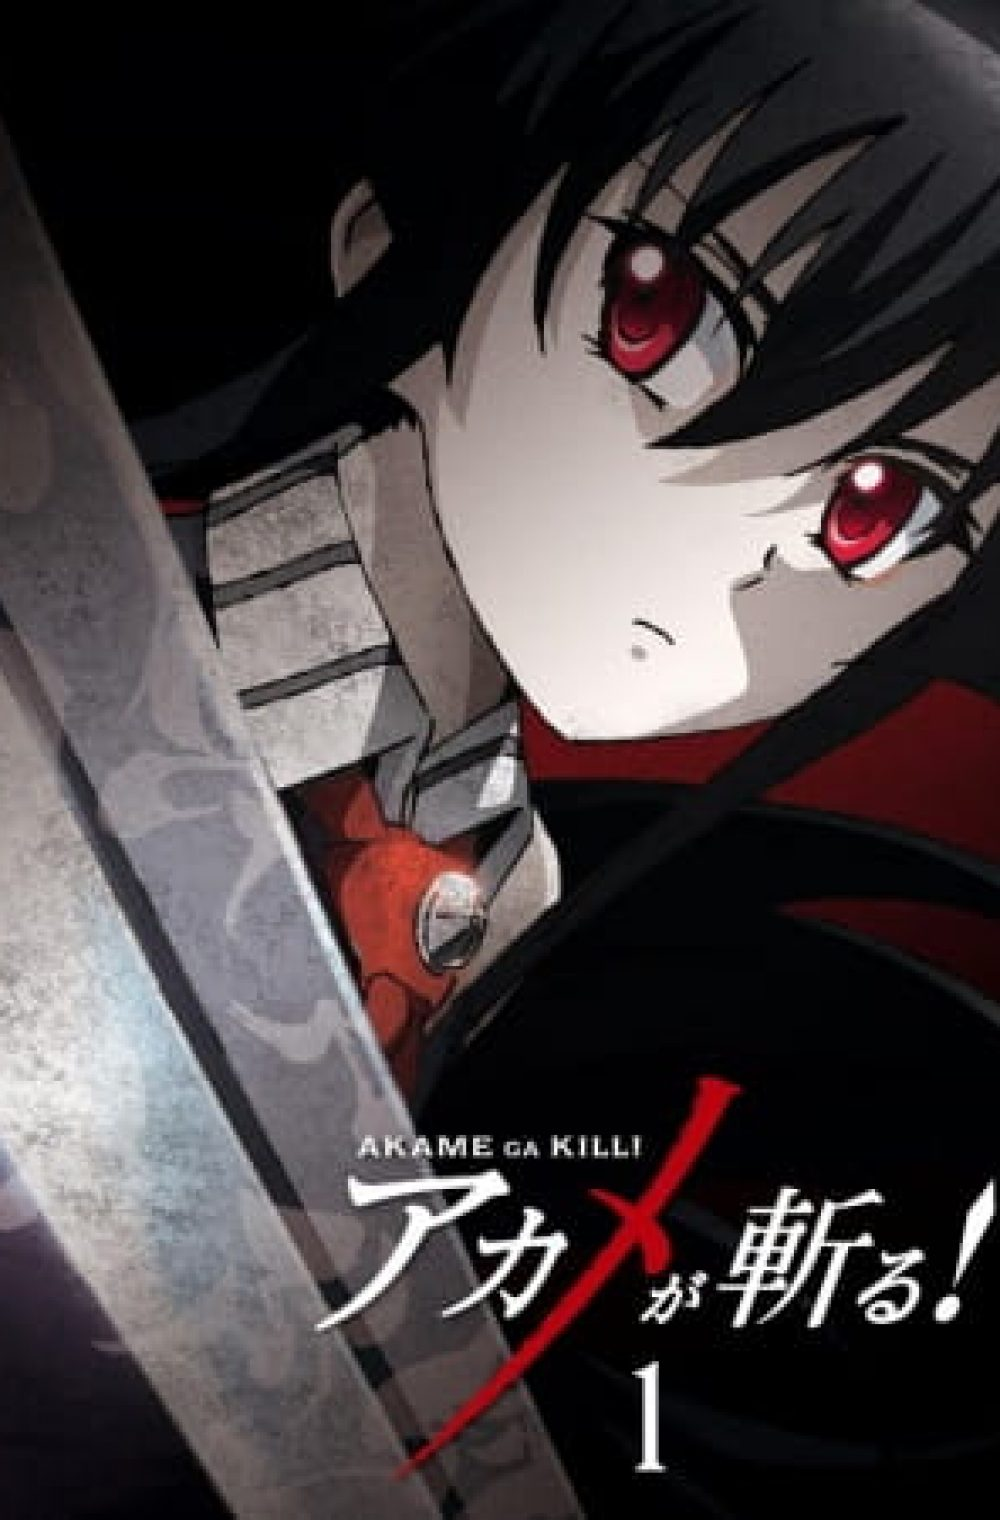 (DUB) Akame ga Kill! (UNCENSORED)